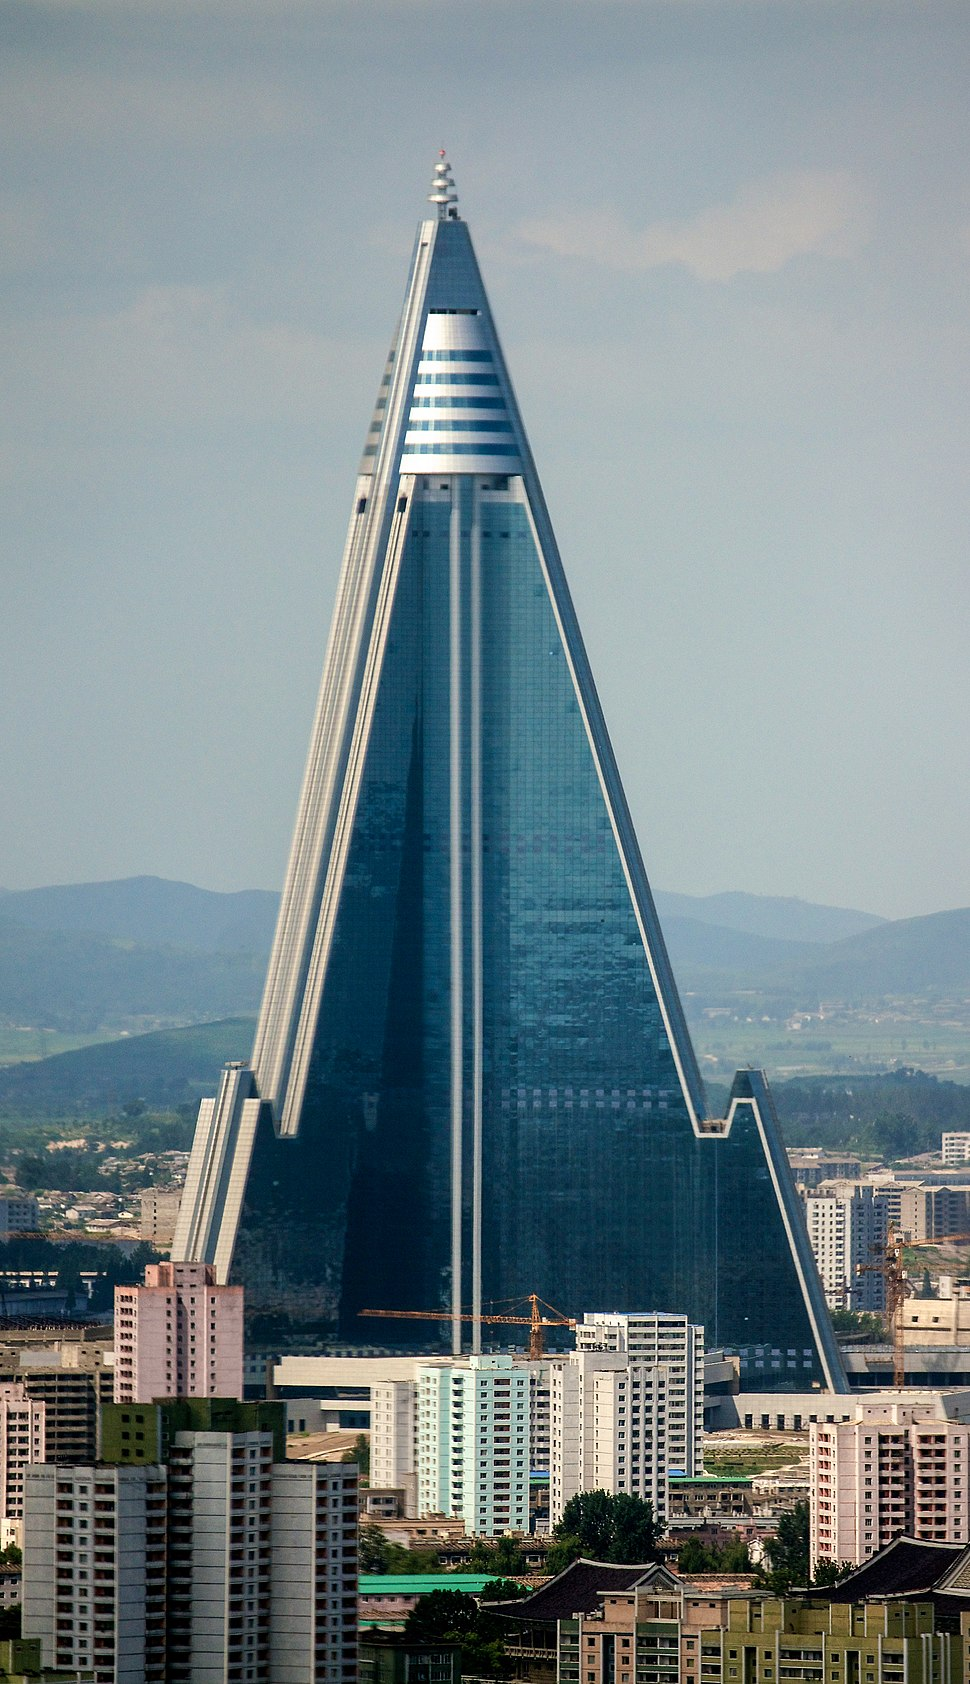 Ryugyong Hotel - August 27, 2011 (Cropped)